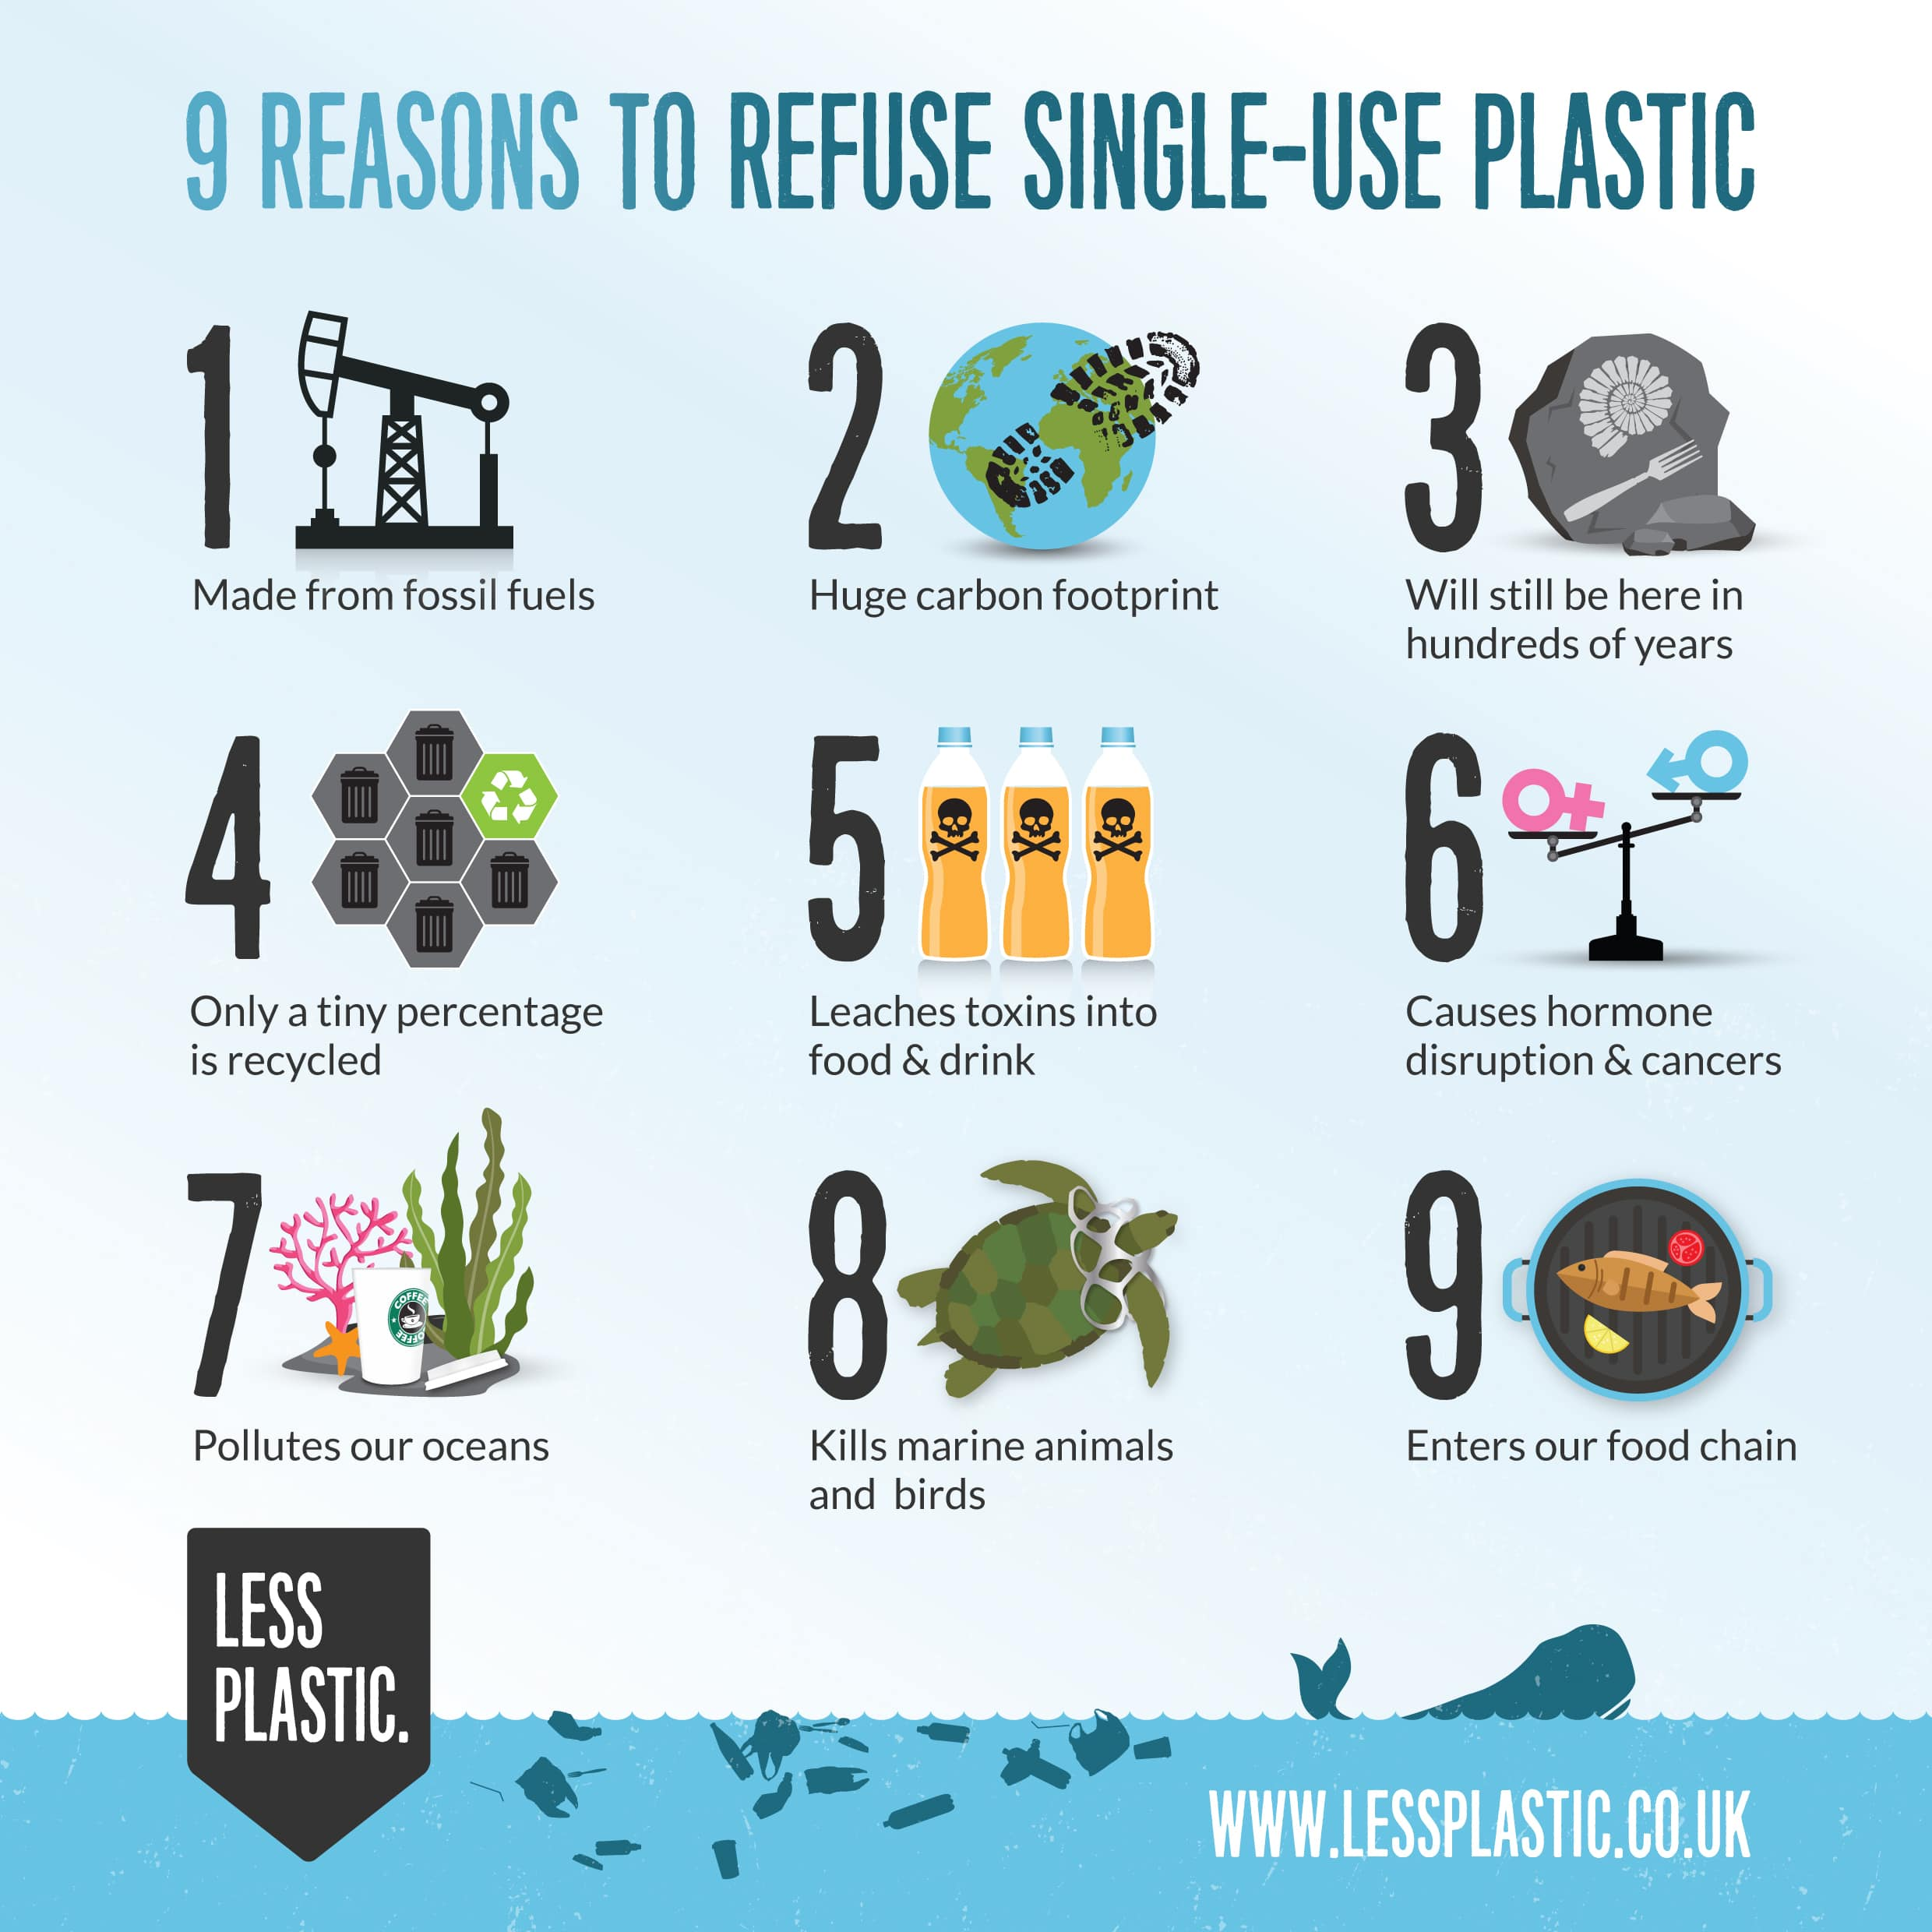 9 reasons to refuse single-use plastic infographic